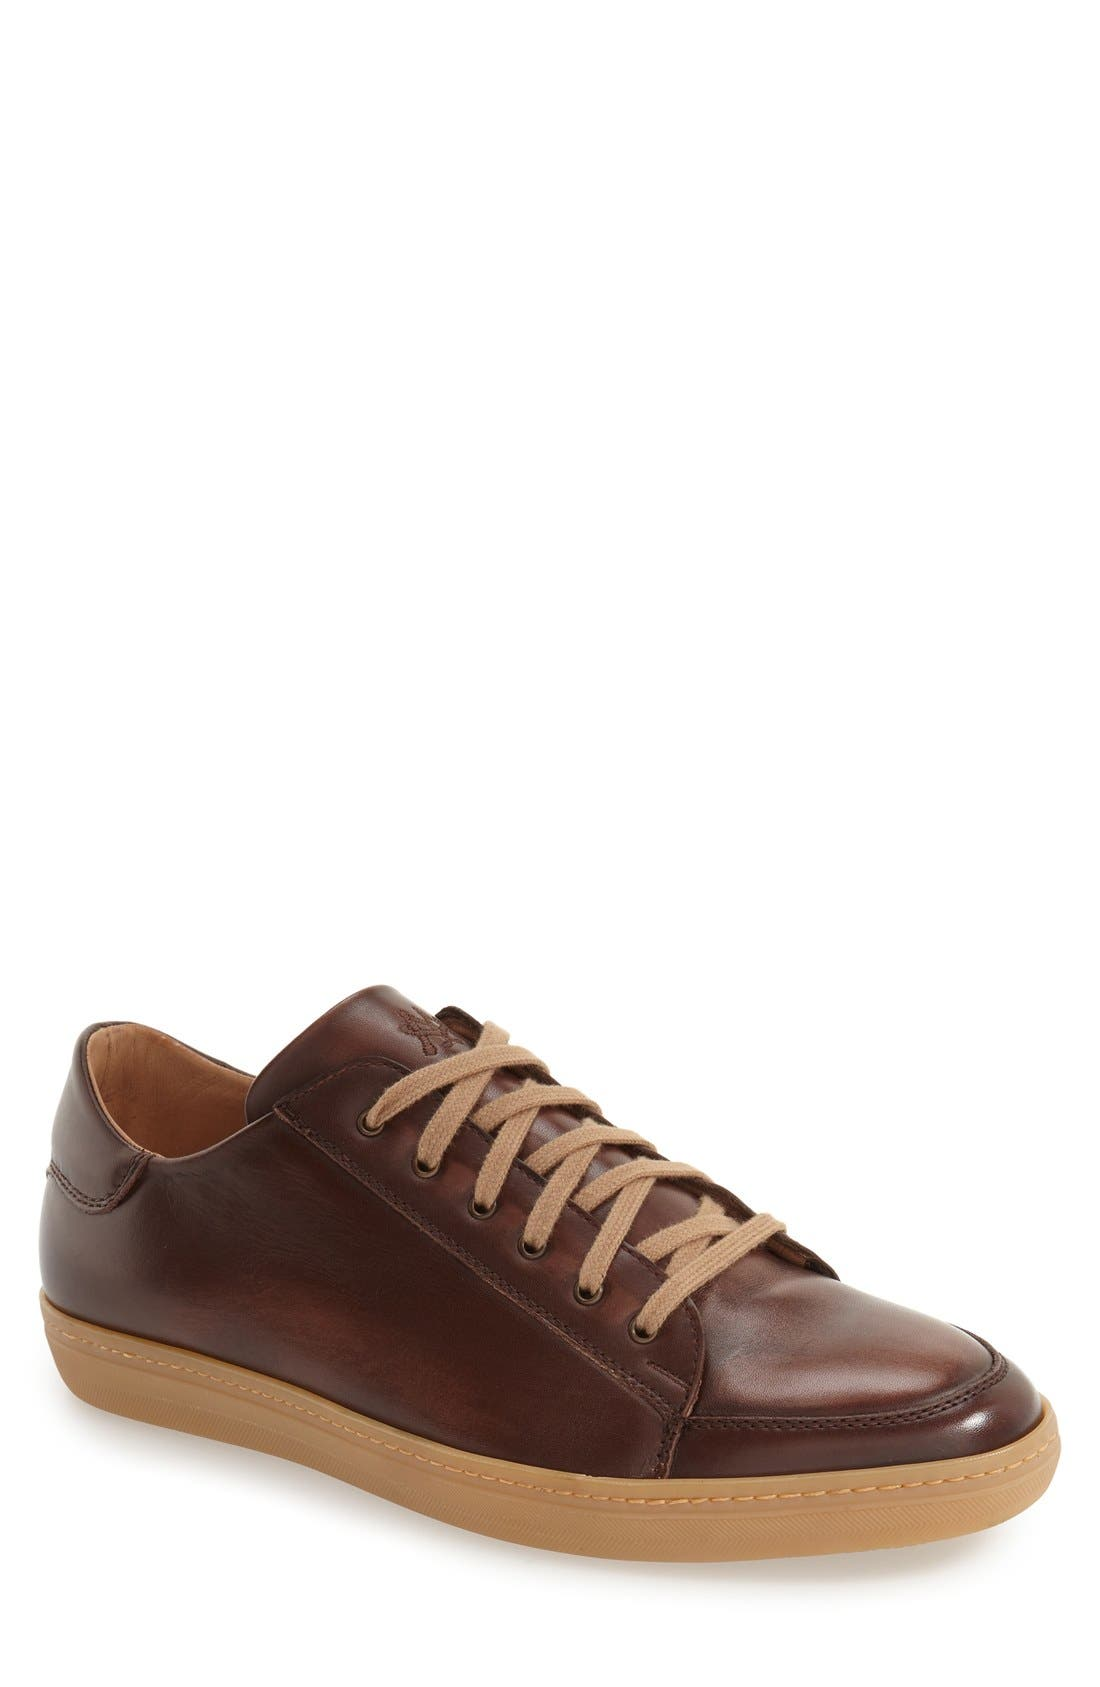 'Masi' Lace-Up Sneaker,                         Main,                         color, BROWN